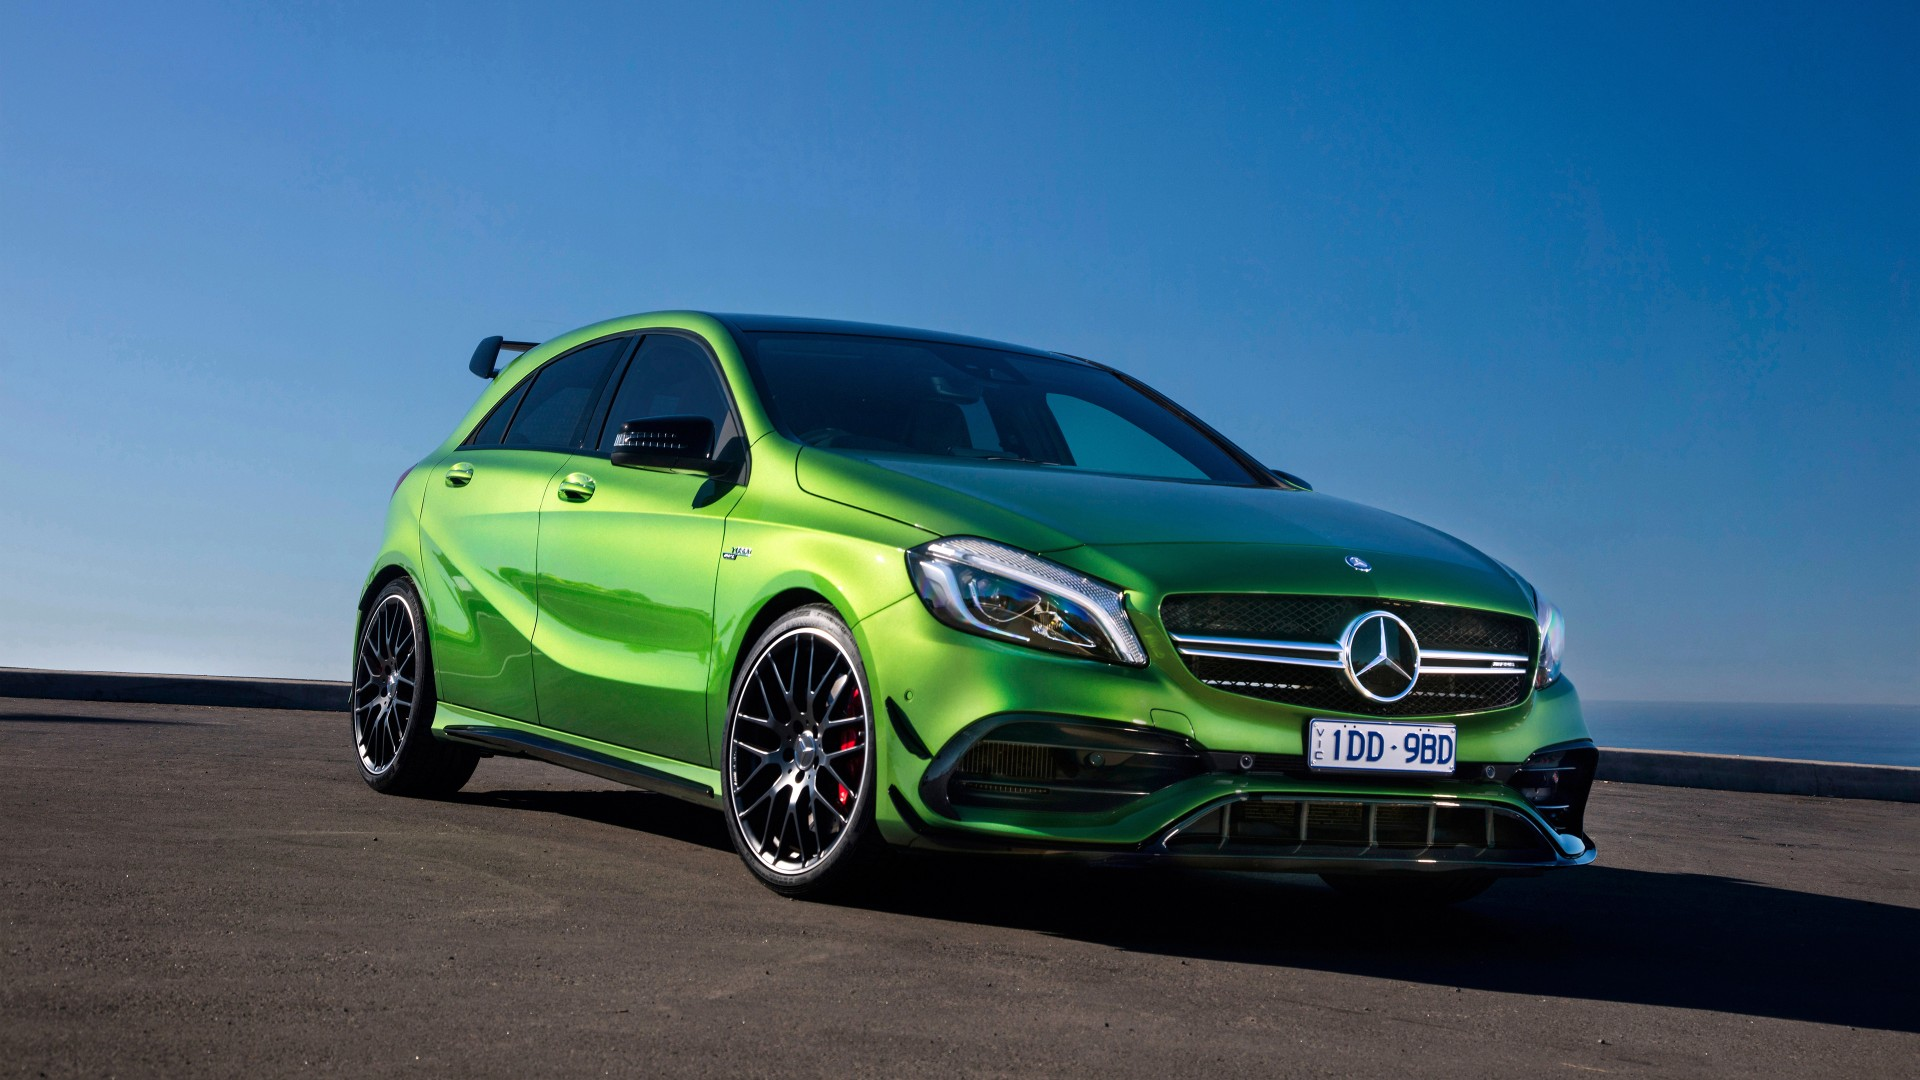 2016 Mercedes Benz A Class Wallpaper | HD Car Wallpapers | ID #6437